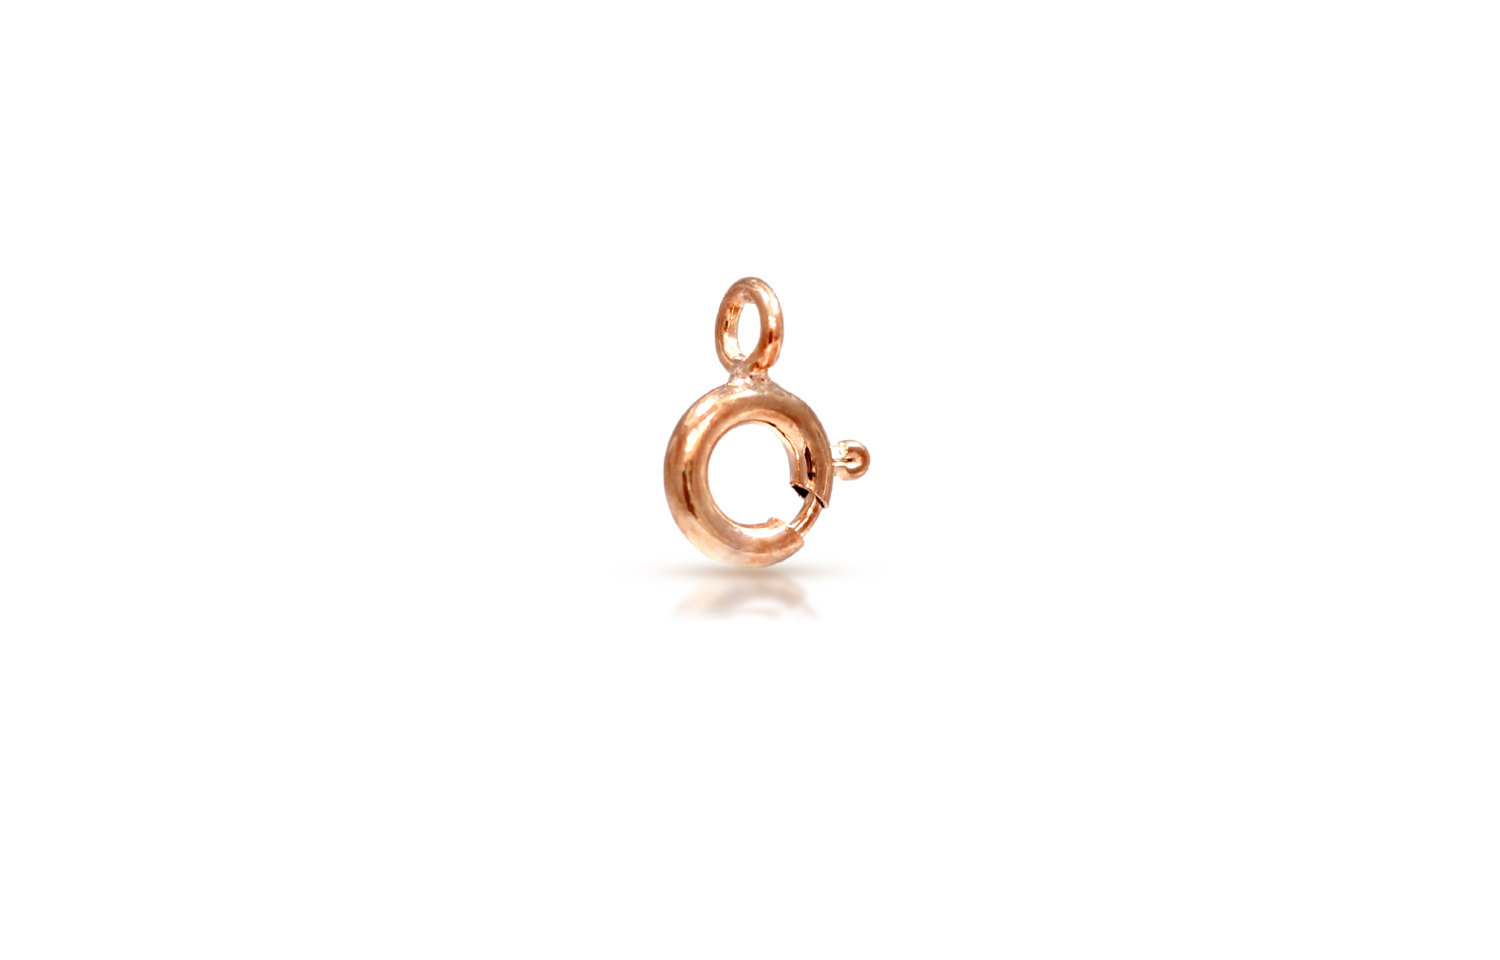 Primary image for Clasp, Spring Ring W/ Closed Ring, 14Kt Rose Gold Filled, 6mm, 100pcs (6111)/5